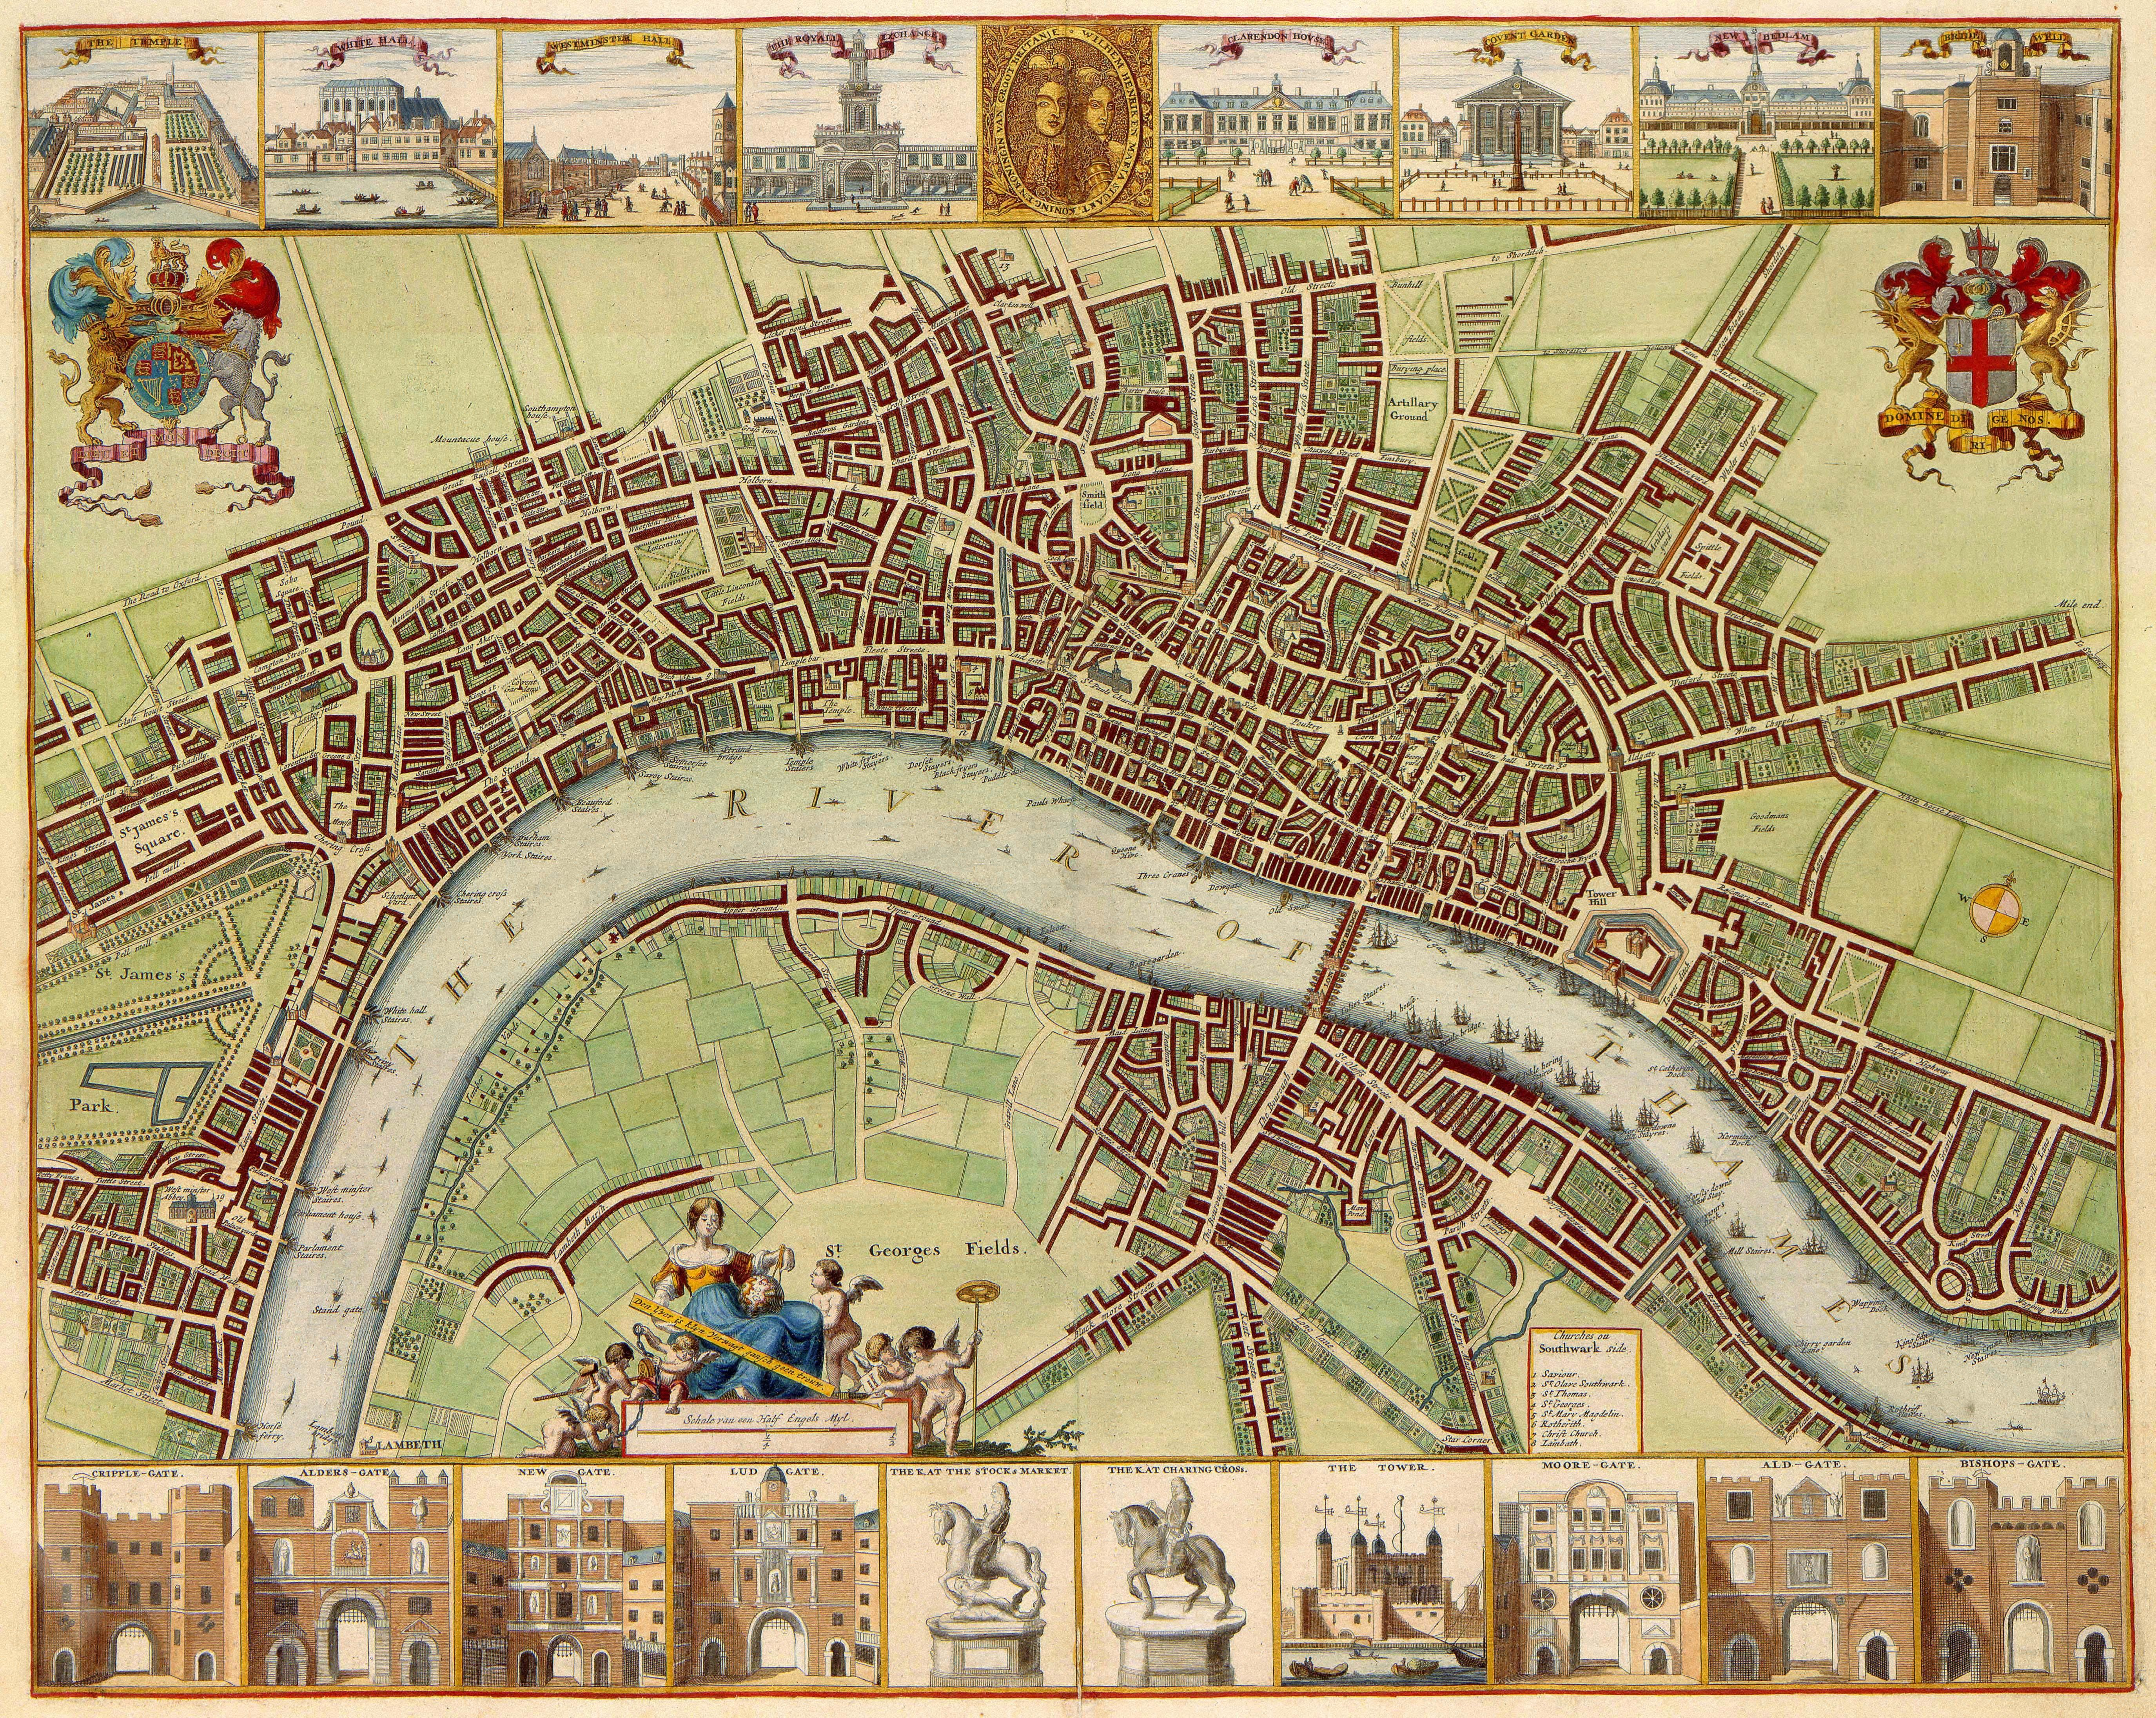 Large 17th century old world style map of london england fine art large 17th century old world style map of london england fine art poster print gumiabroncs Gallery